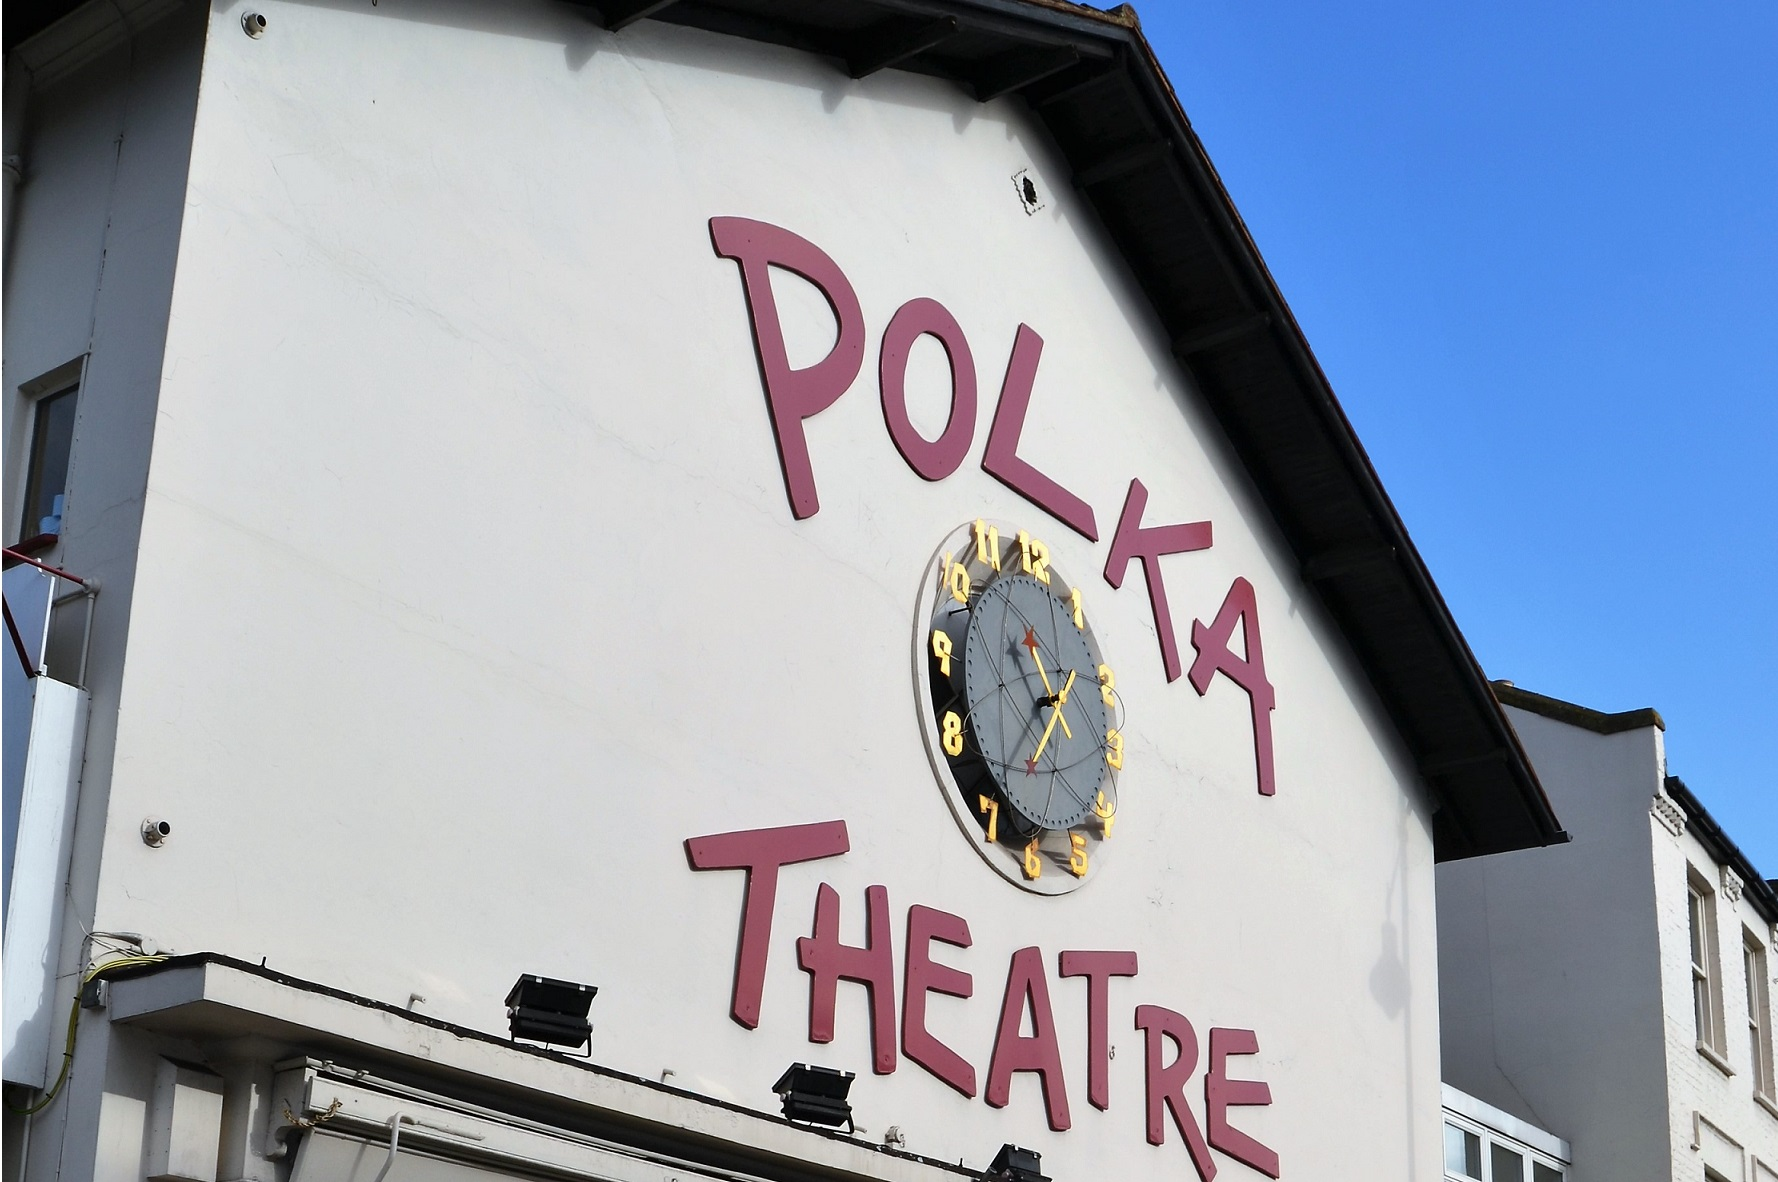 Polka Theatre - How you can support Polka